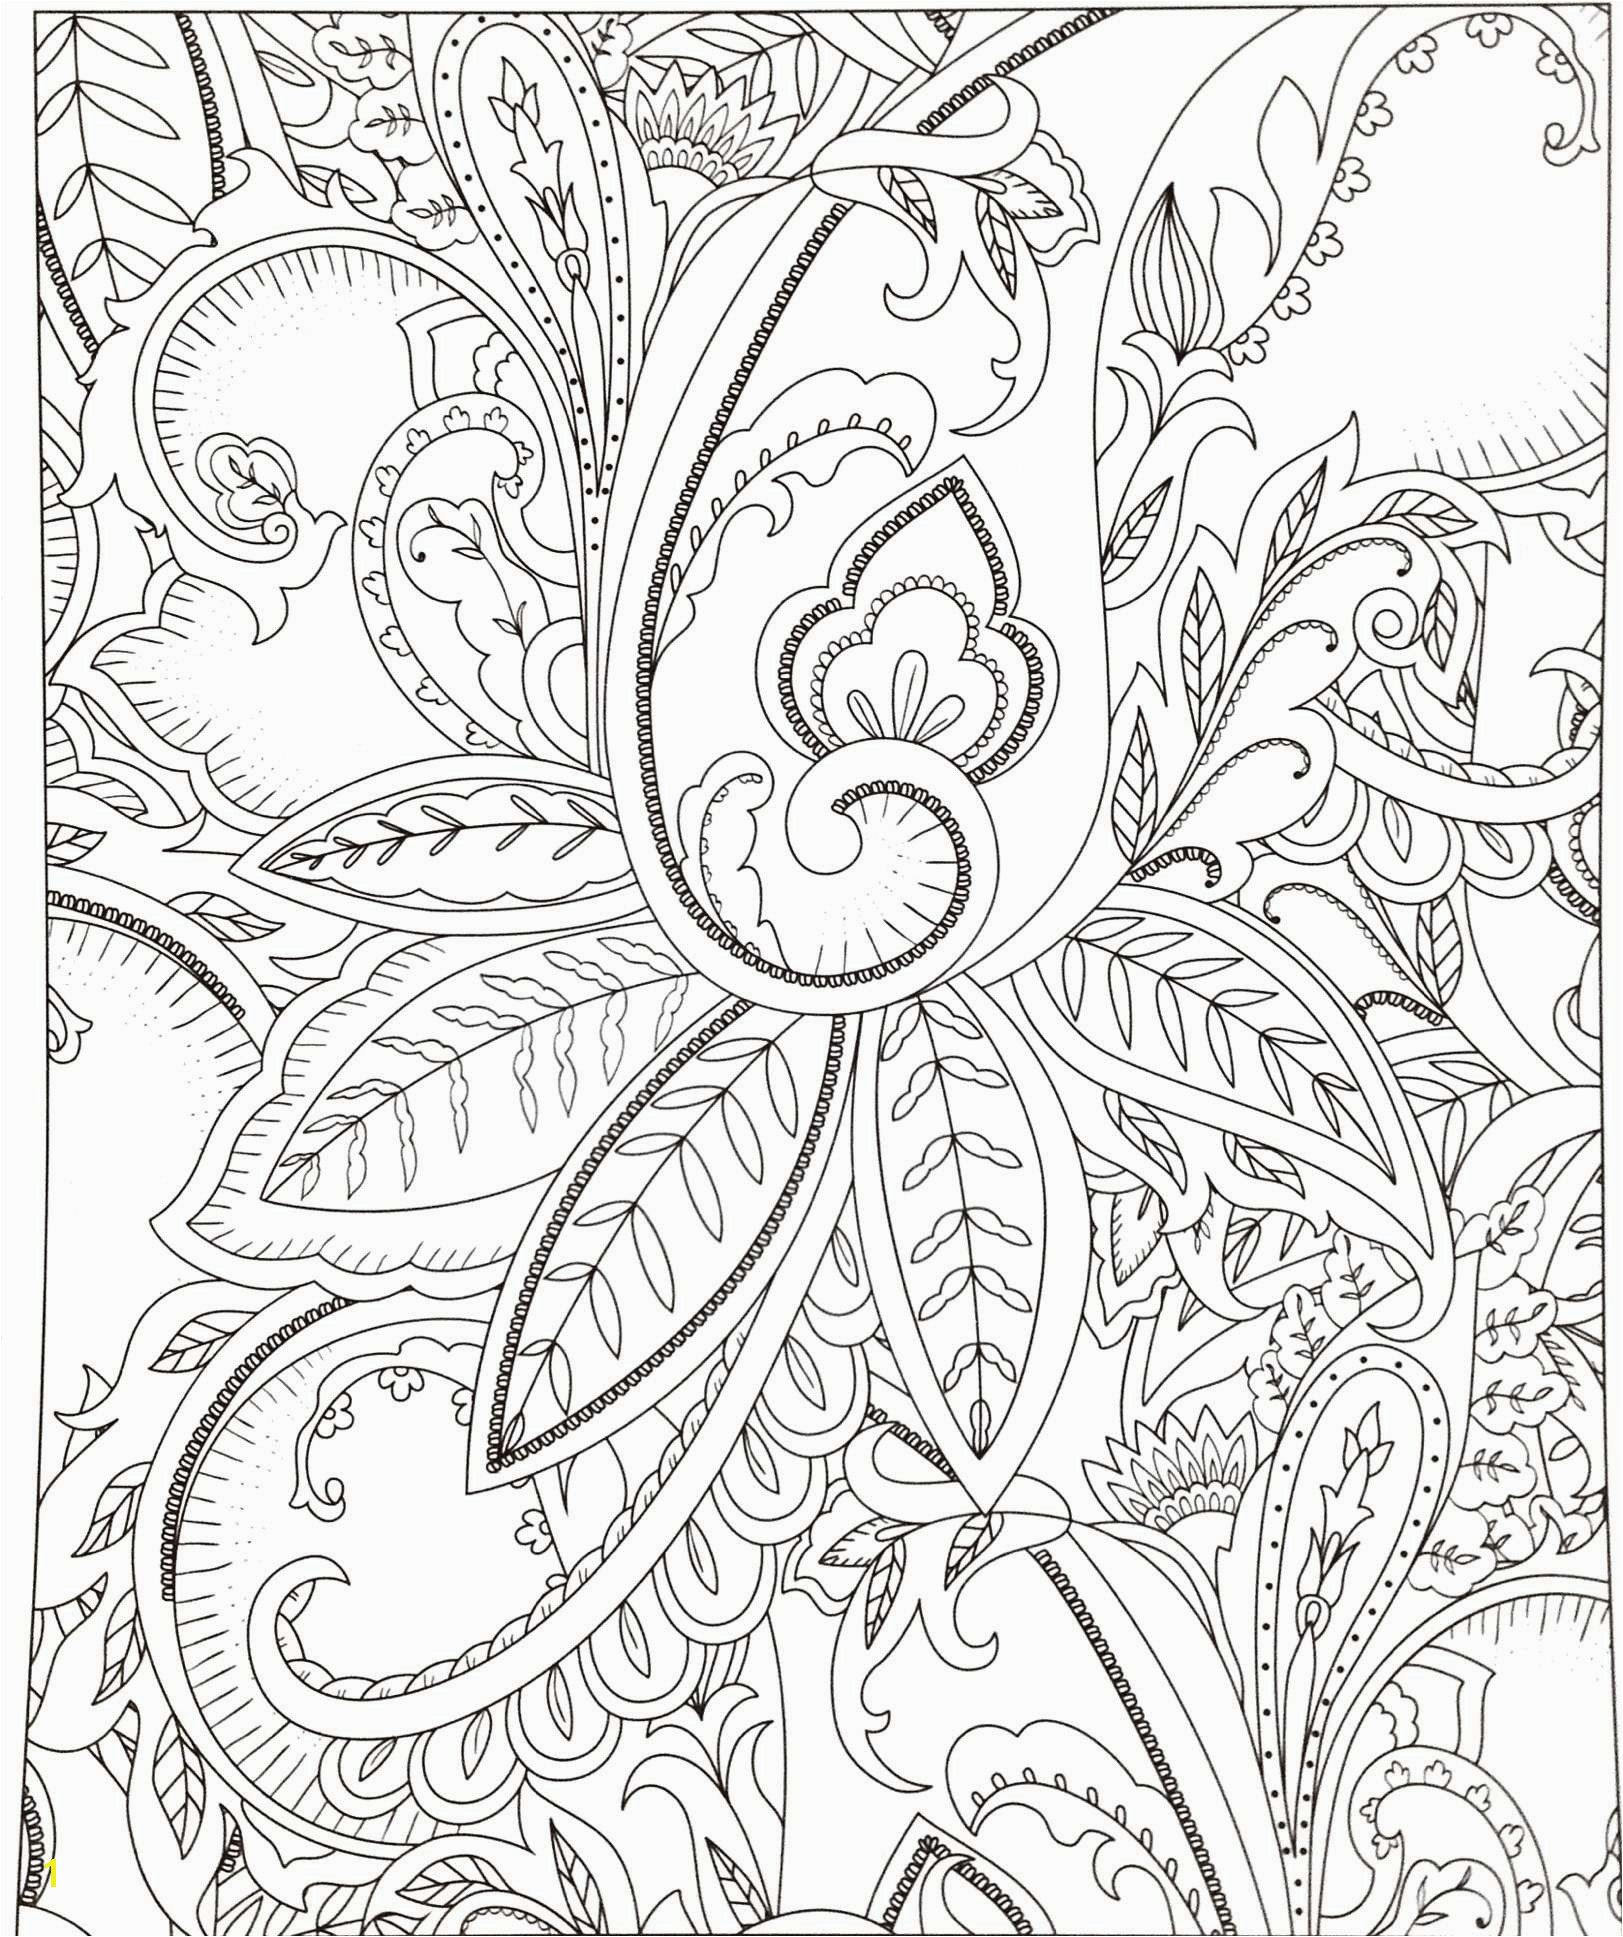 Fun Math Worksheets for Elementary Students Inspirationa Math Christmas Coloring Pages Free Cool Coloring Printables 0d